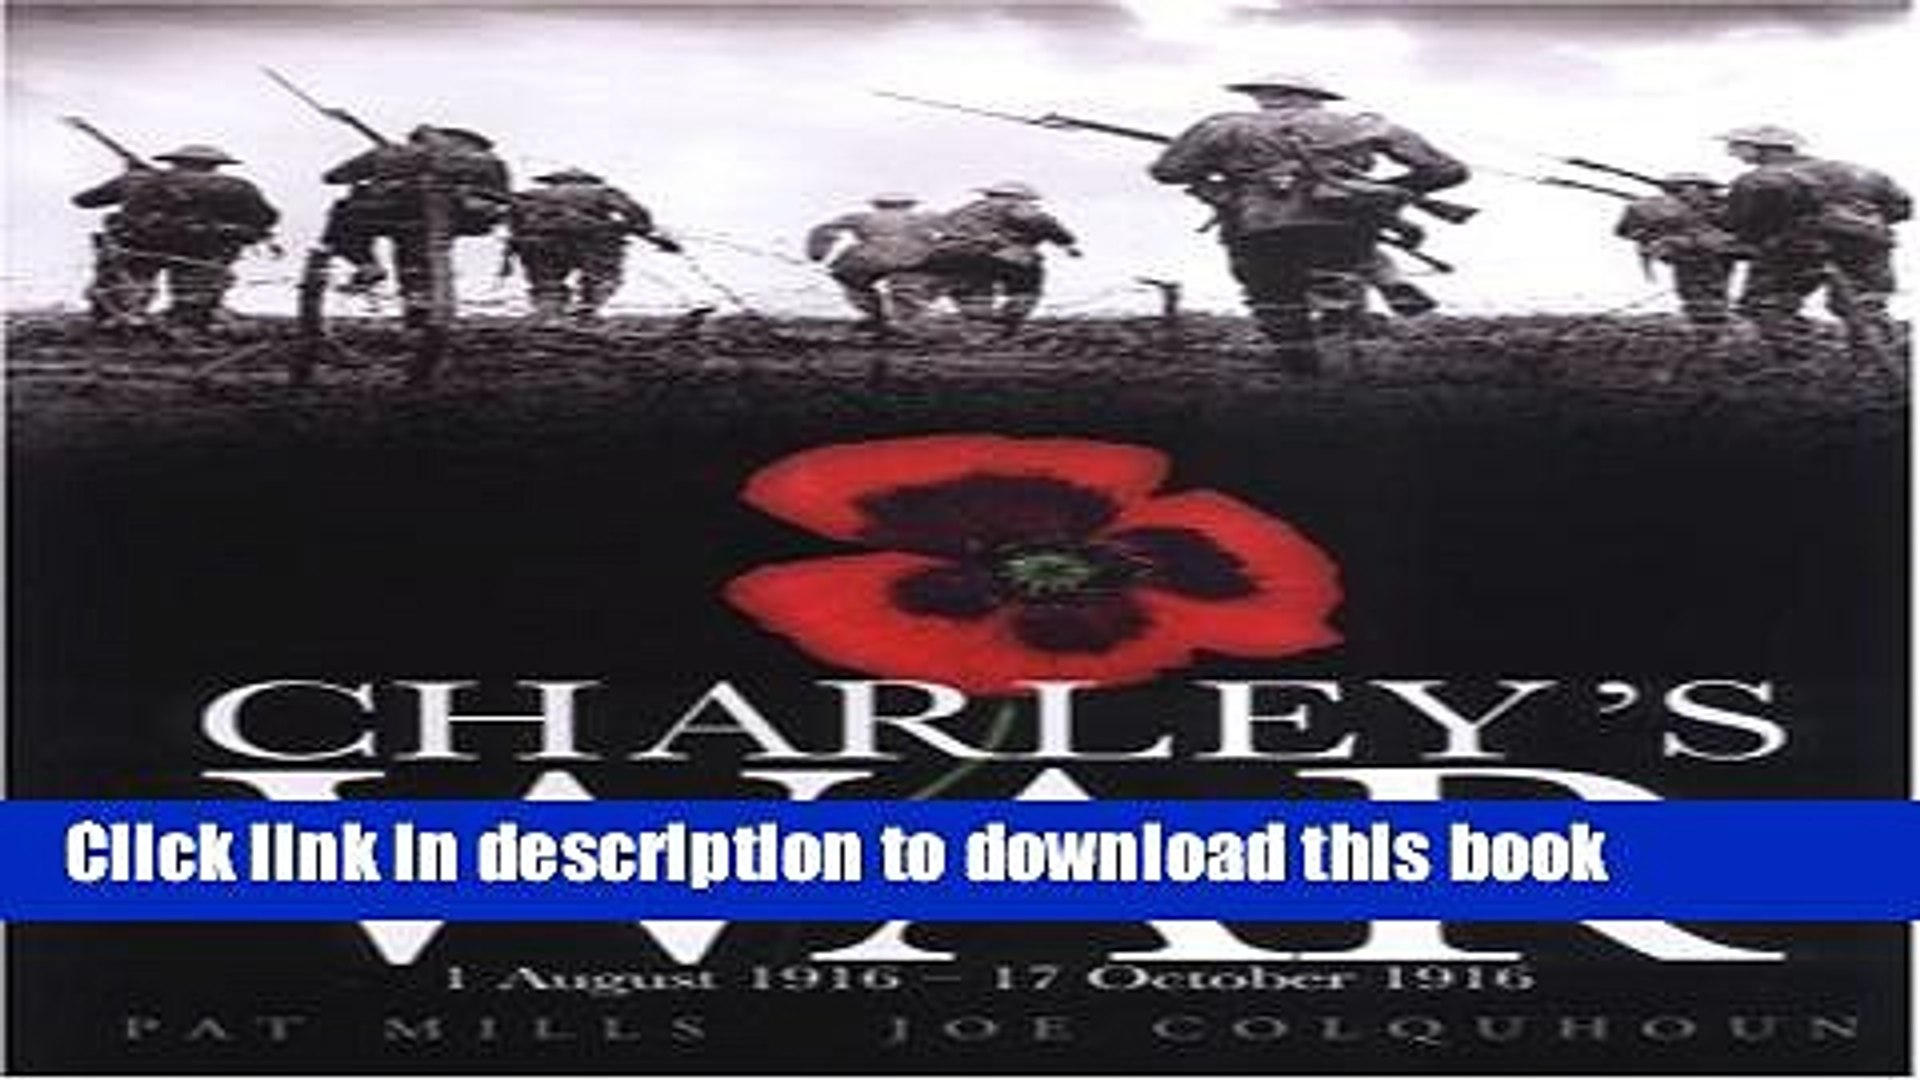 Ebook Charley s War (Vol. 2): 1 August - 17 October 1916 Full Download